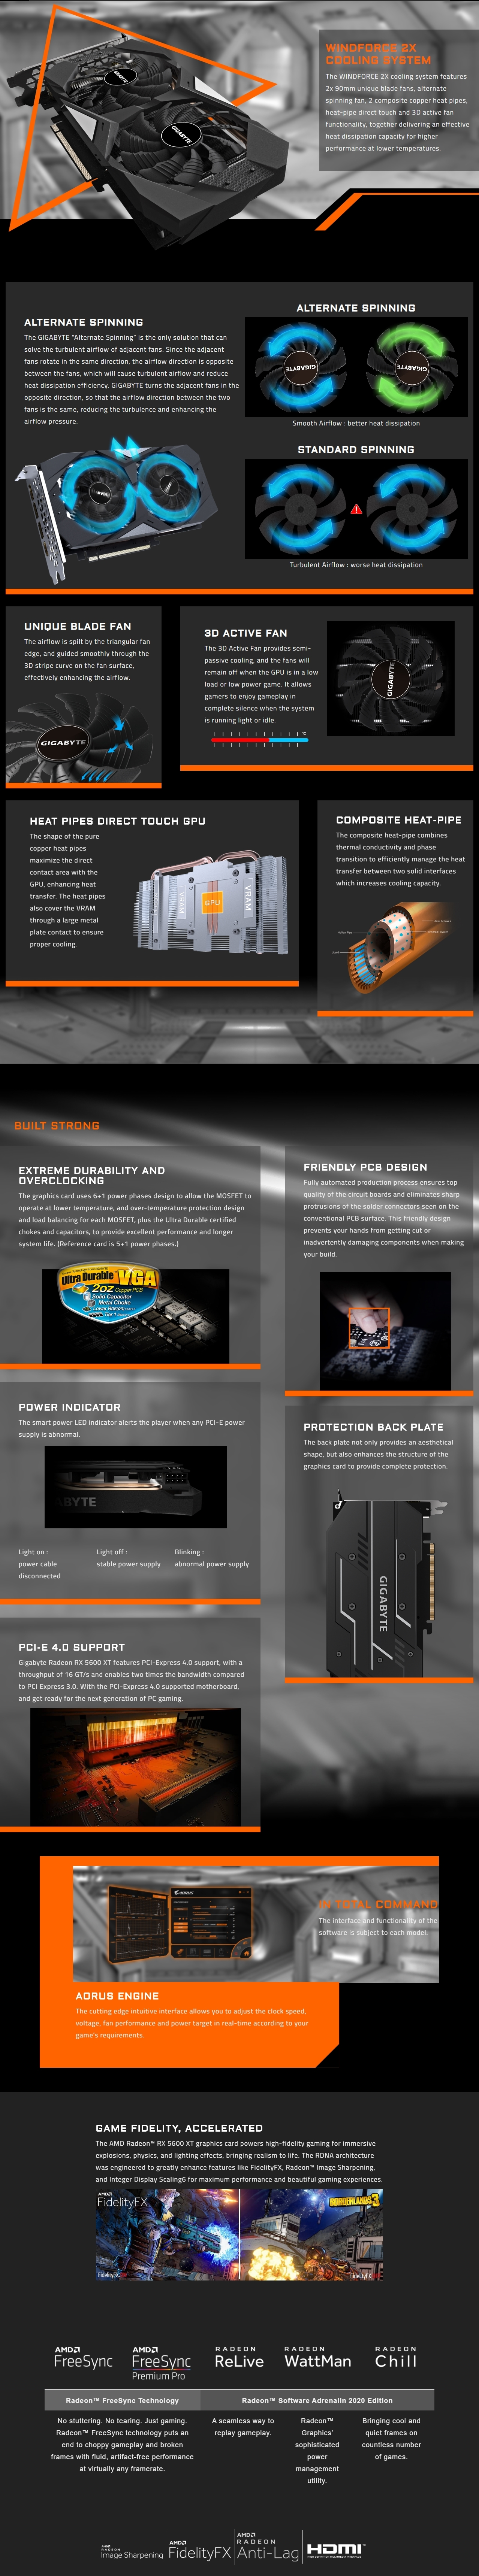 A large marketing image providing additional information about the product Gigabyte Radeon RX 5600 XT WINDFORCE OC 6GB GDDR6 - Additional alt info not provided